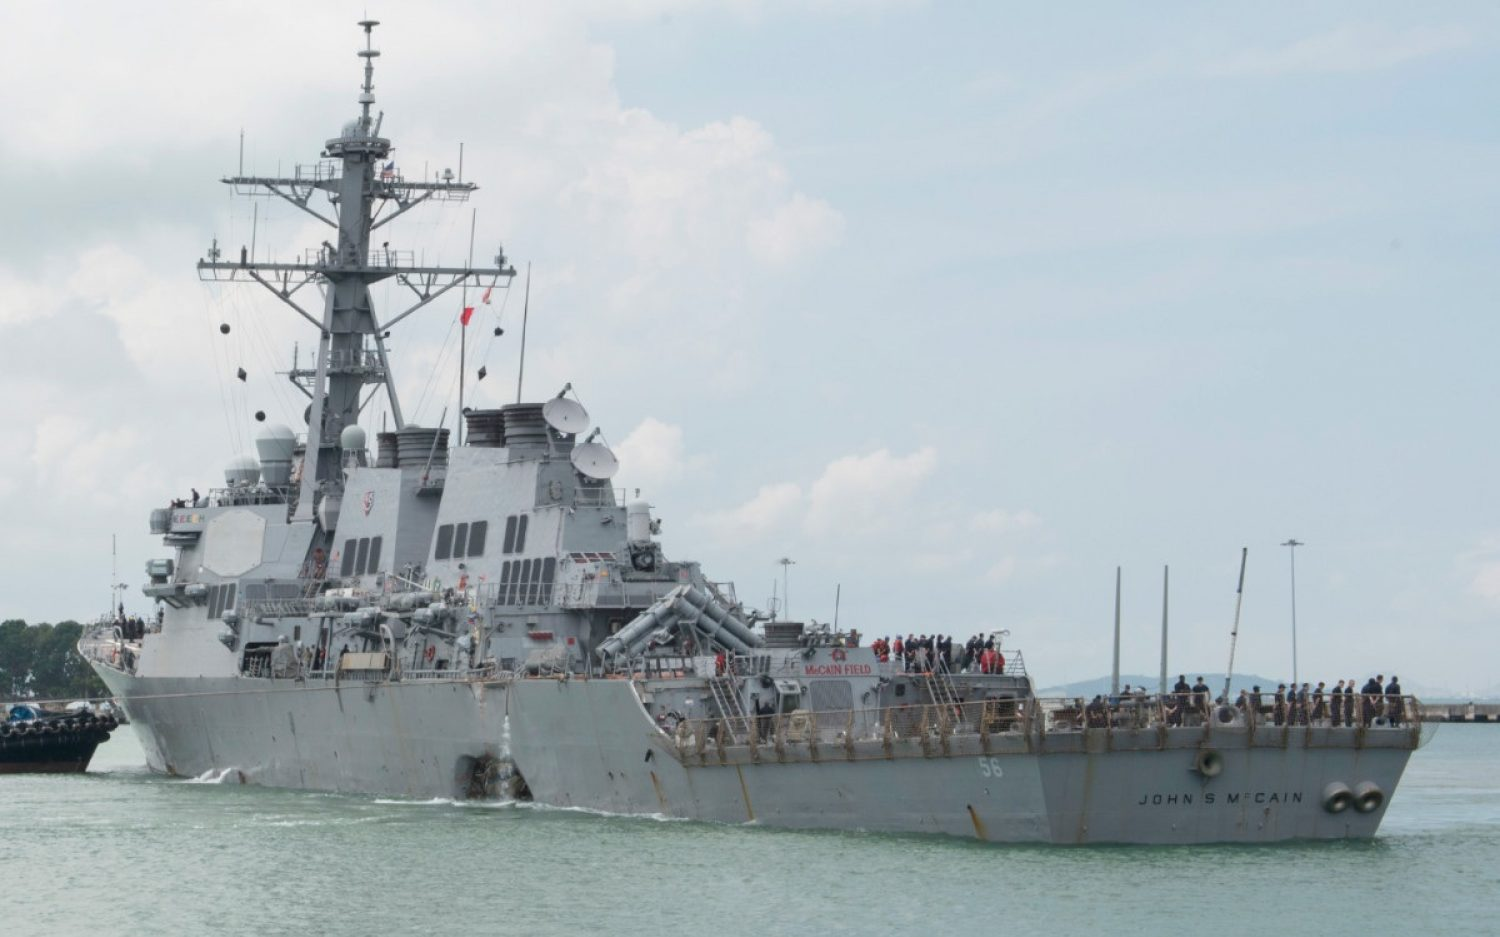 Remains of all missing sailors found